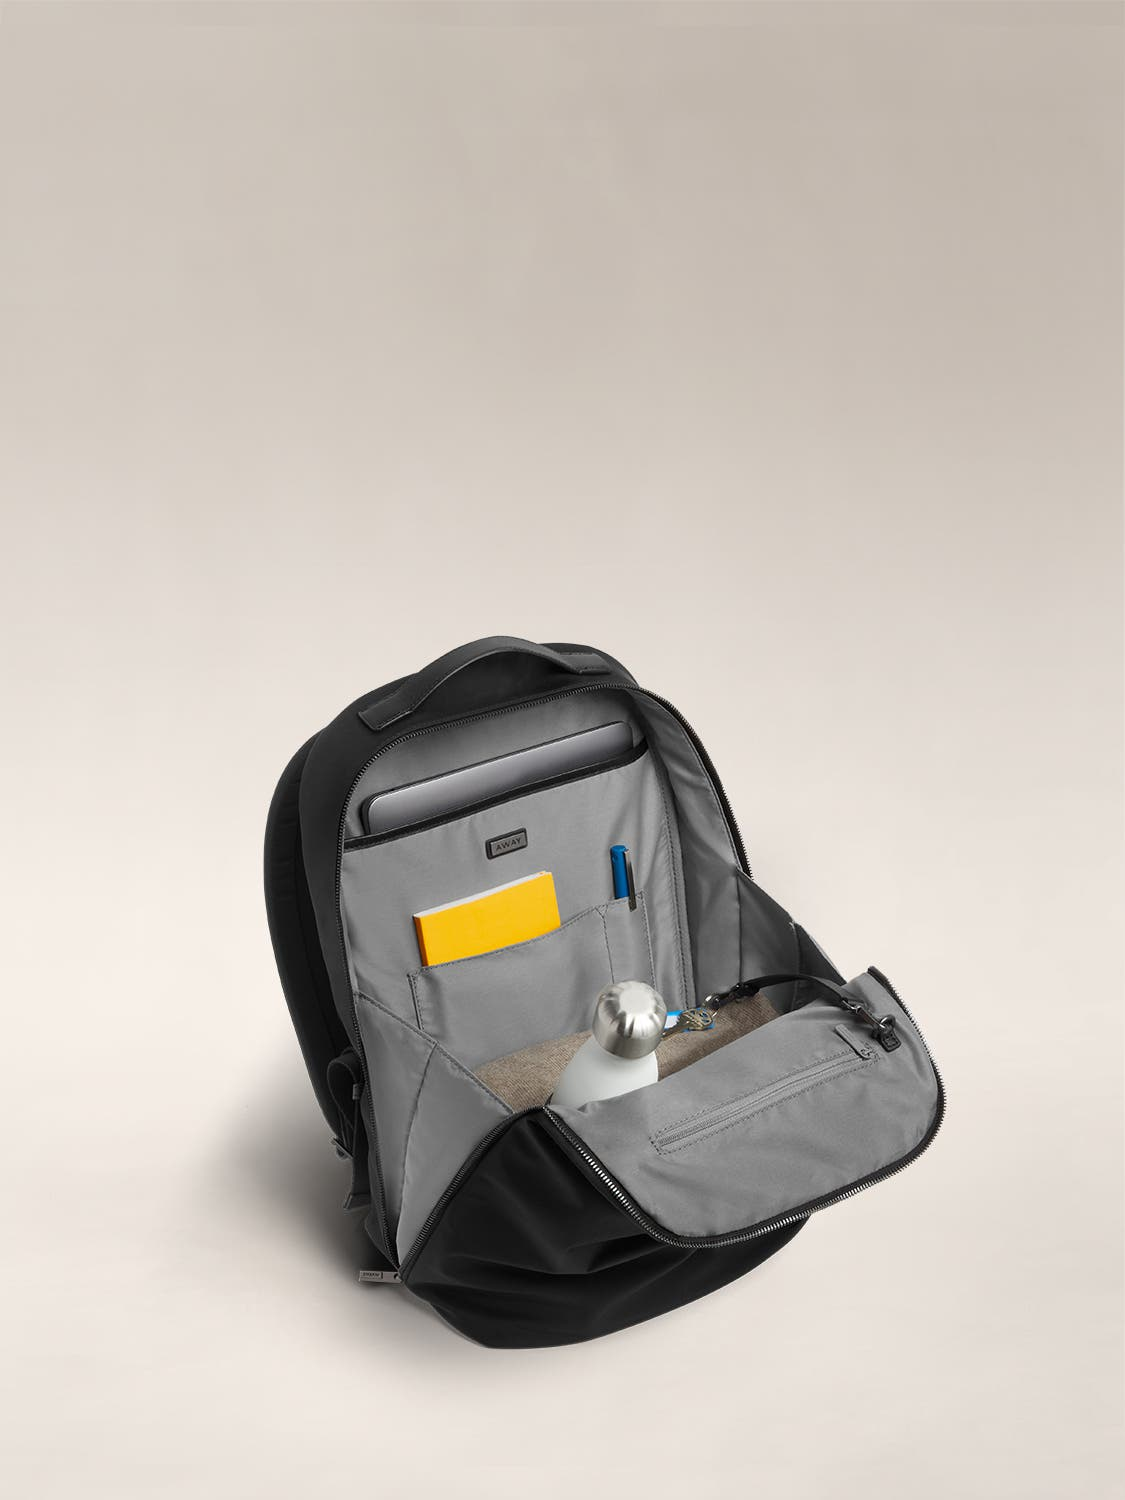 Open view  of a black flap backpack with organized pockets shown with a yellow notebook, white water bottle, and a set of keys.